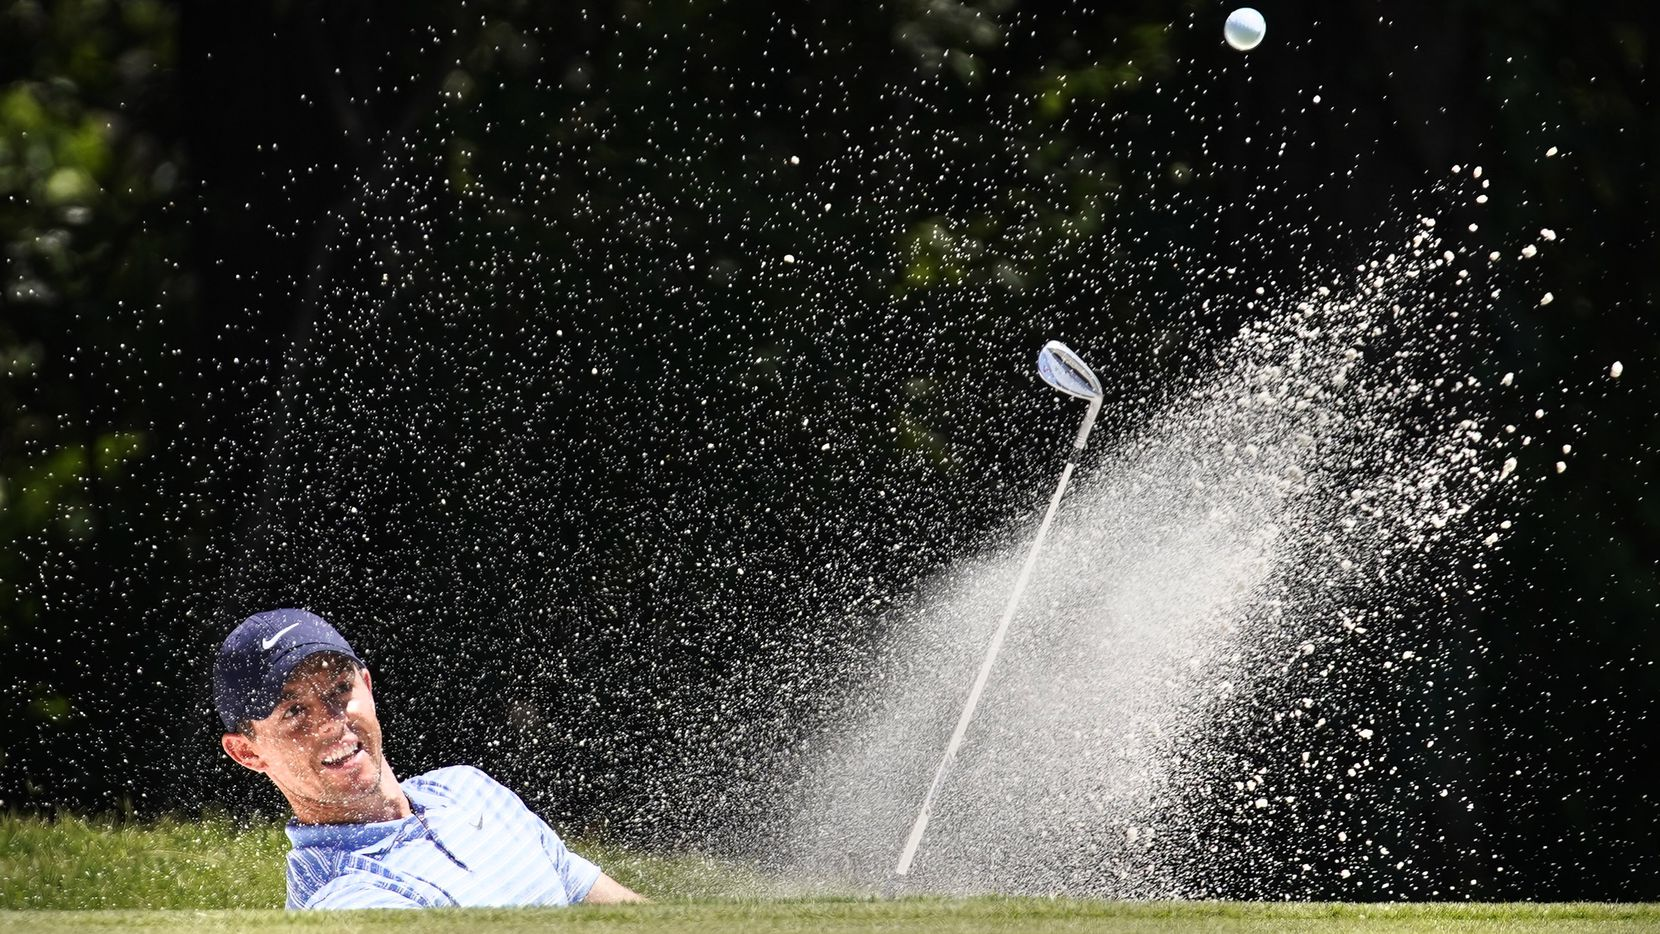 PGA Tour golfer Rory McIlroy hits out of the No. 11 green side bunker during the third round of the Charles Schwab Challenge at the Colonial Country Club in Fort Worth, Saturday, June 13, 2020.  The Challenge is the first tour event since the COVID-19 pandemic began. (Tom Fox/The Dallas Morning News)